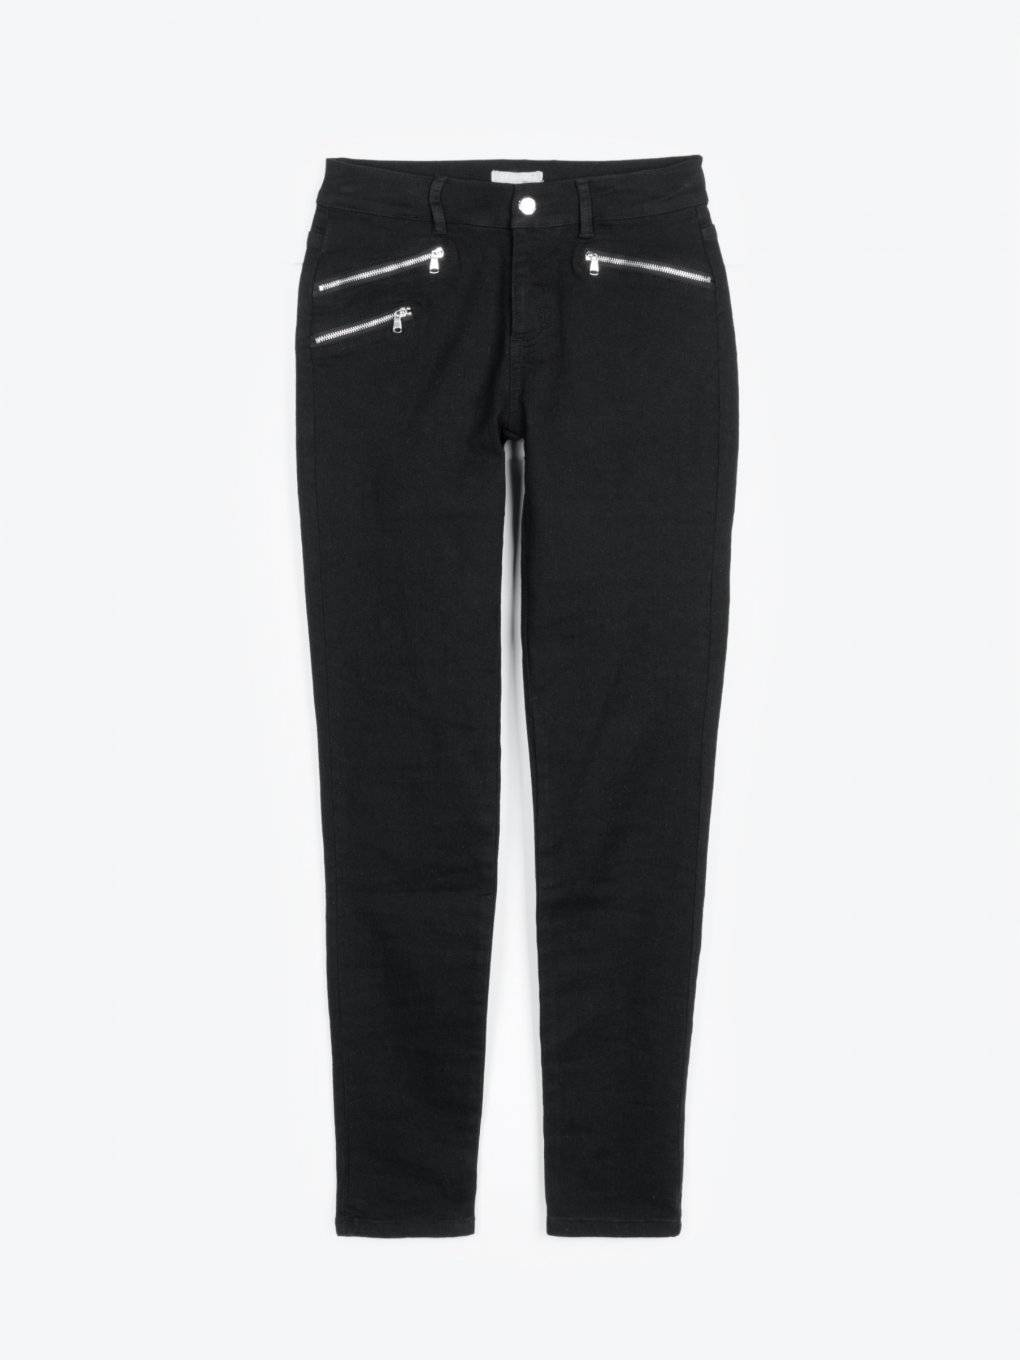 Skinny sretchy trousers with zippers